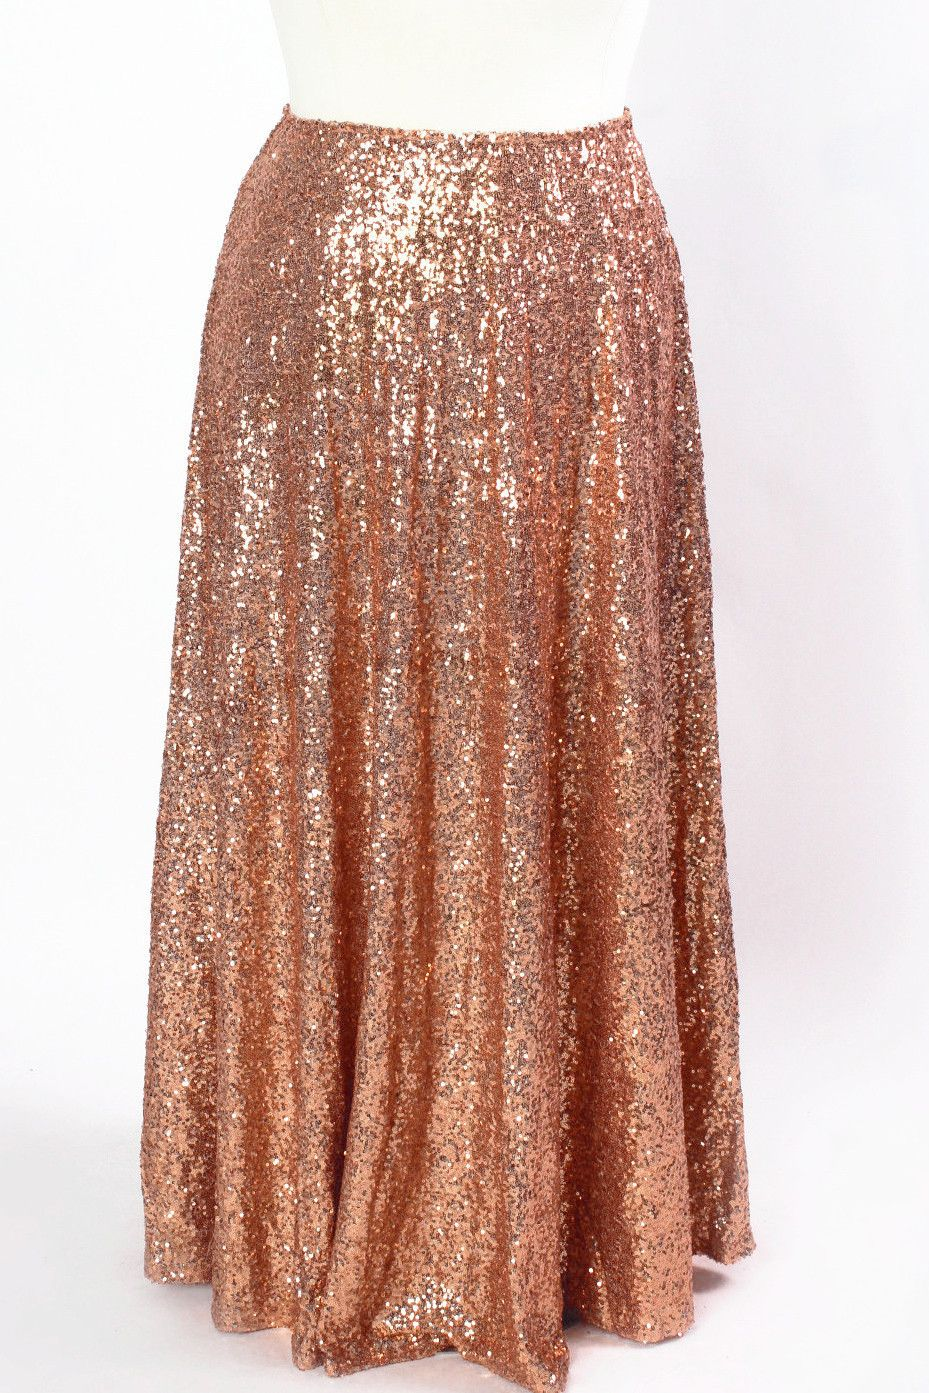 e5b213fecef Plus Size Clothing for Women - Showstopper Sequin Maxi Skirt - Rose Gold -  Society+ - Society Plus - Buy Online Now! - 2